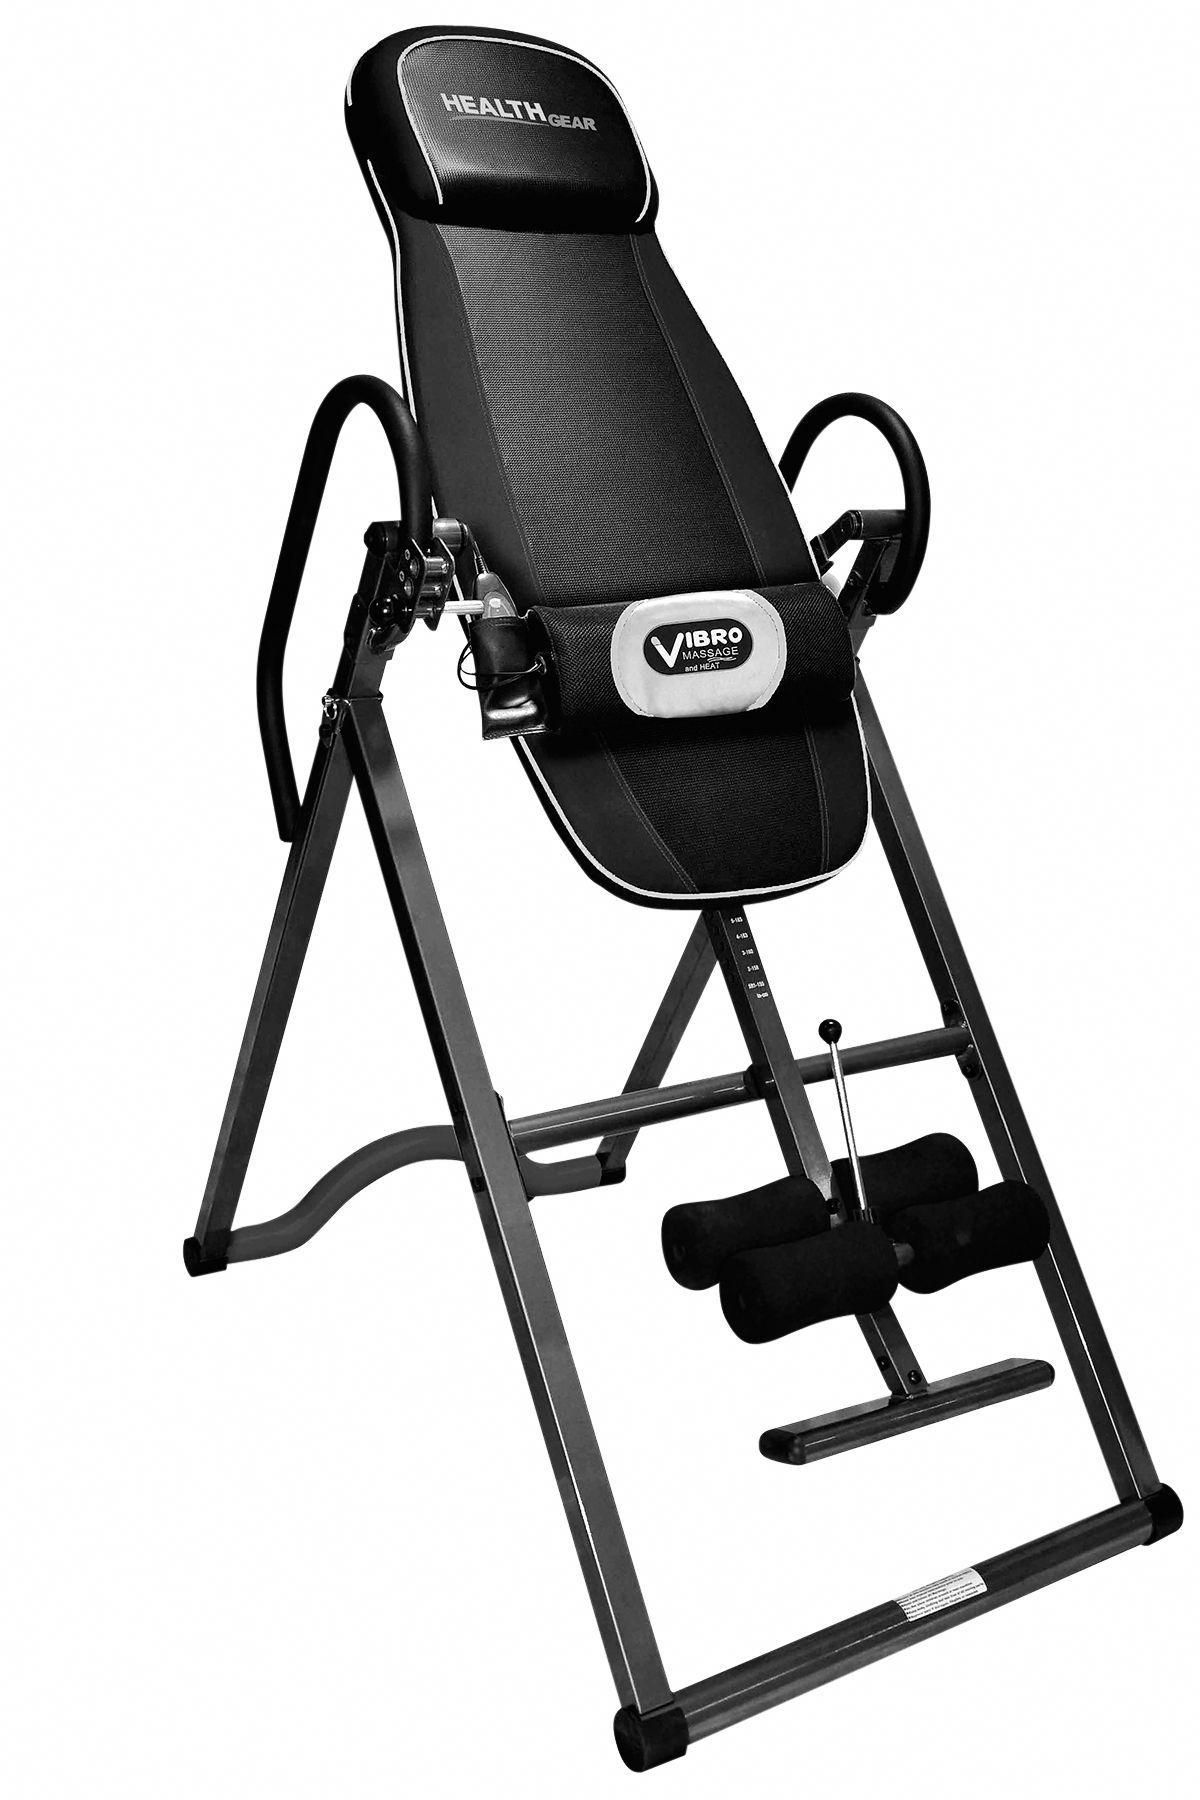 Health gear itm 4800a deluxe heat and massage inversion